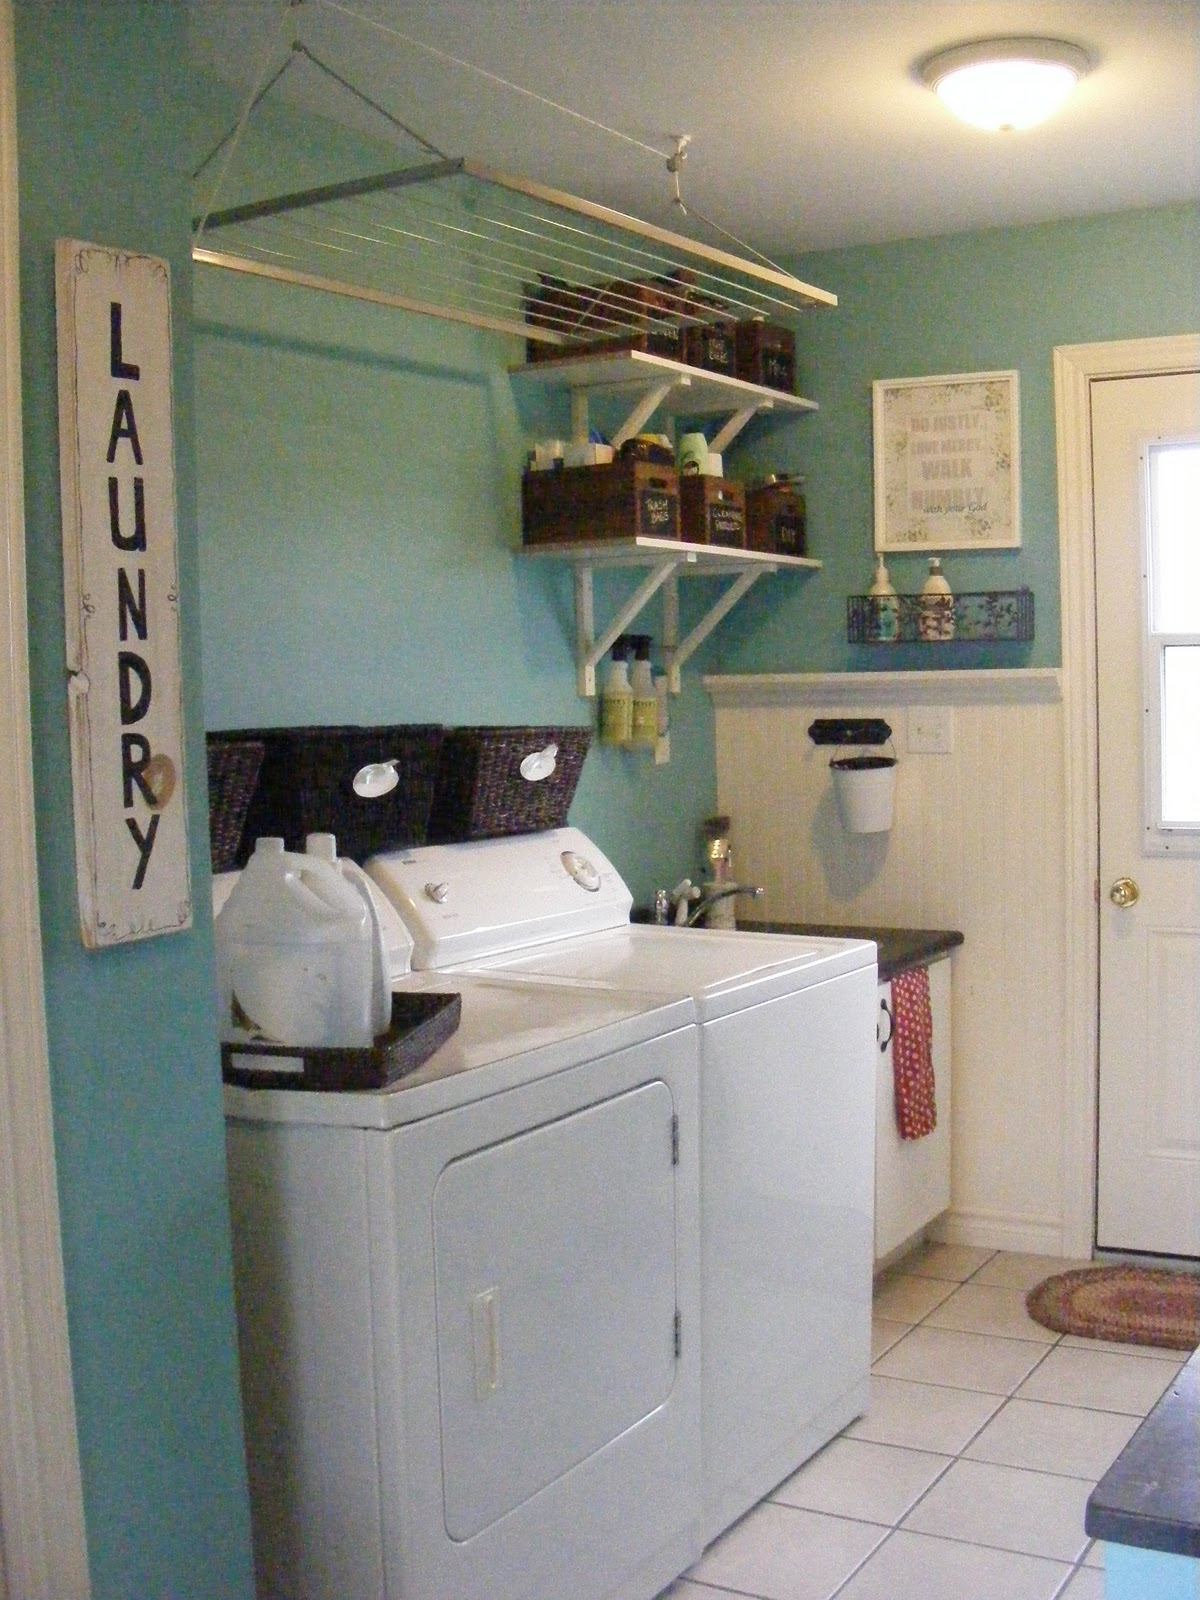 OrganizedHome Day 28 Laundry Room Organization  The